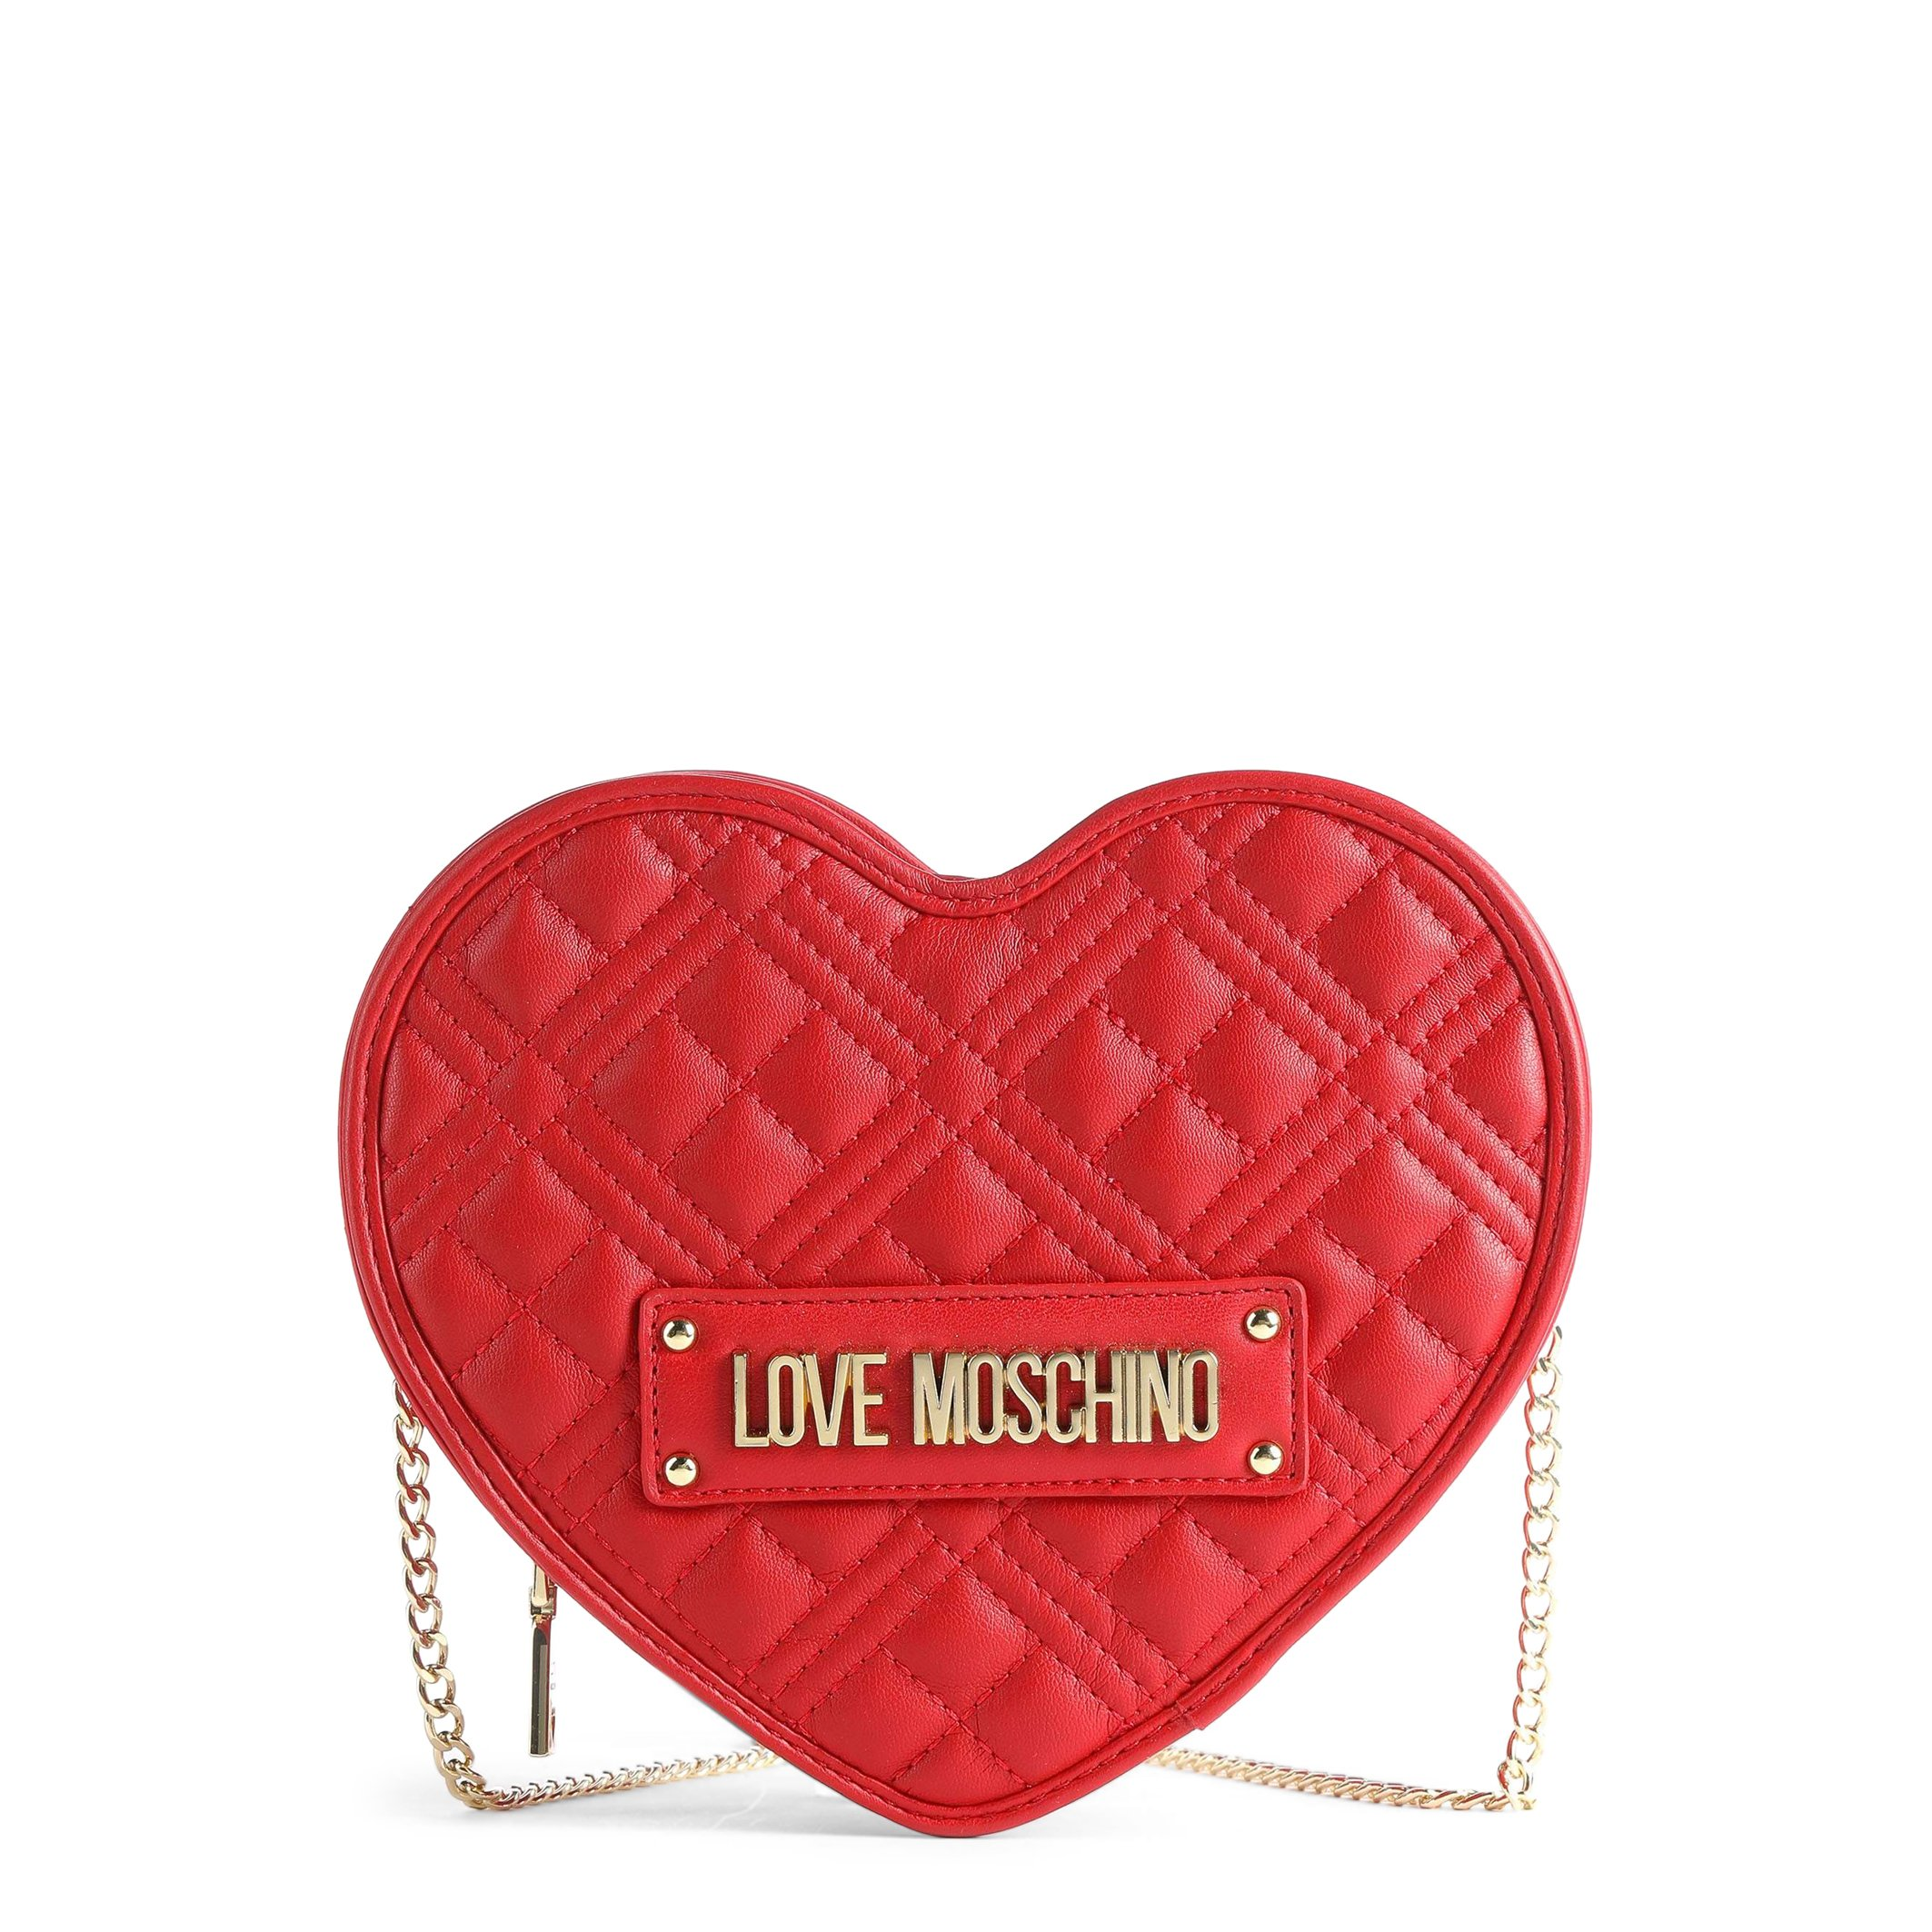 Love Moschino Women's Crossbody Bag Various Colours JC4132PP1DLA0 - red NOSIZE